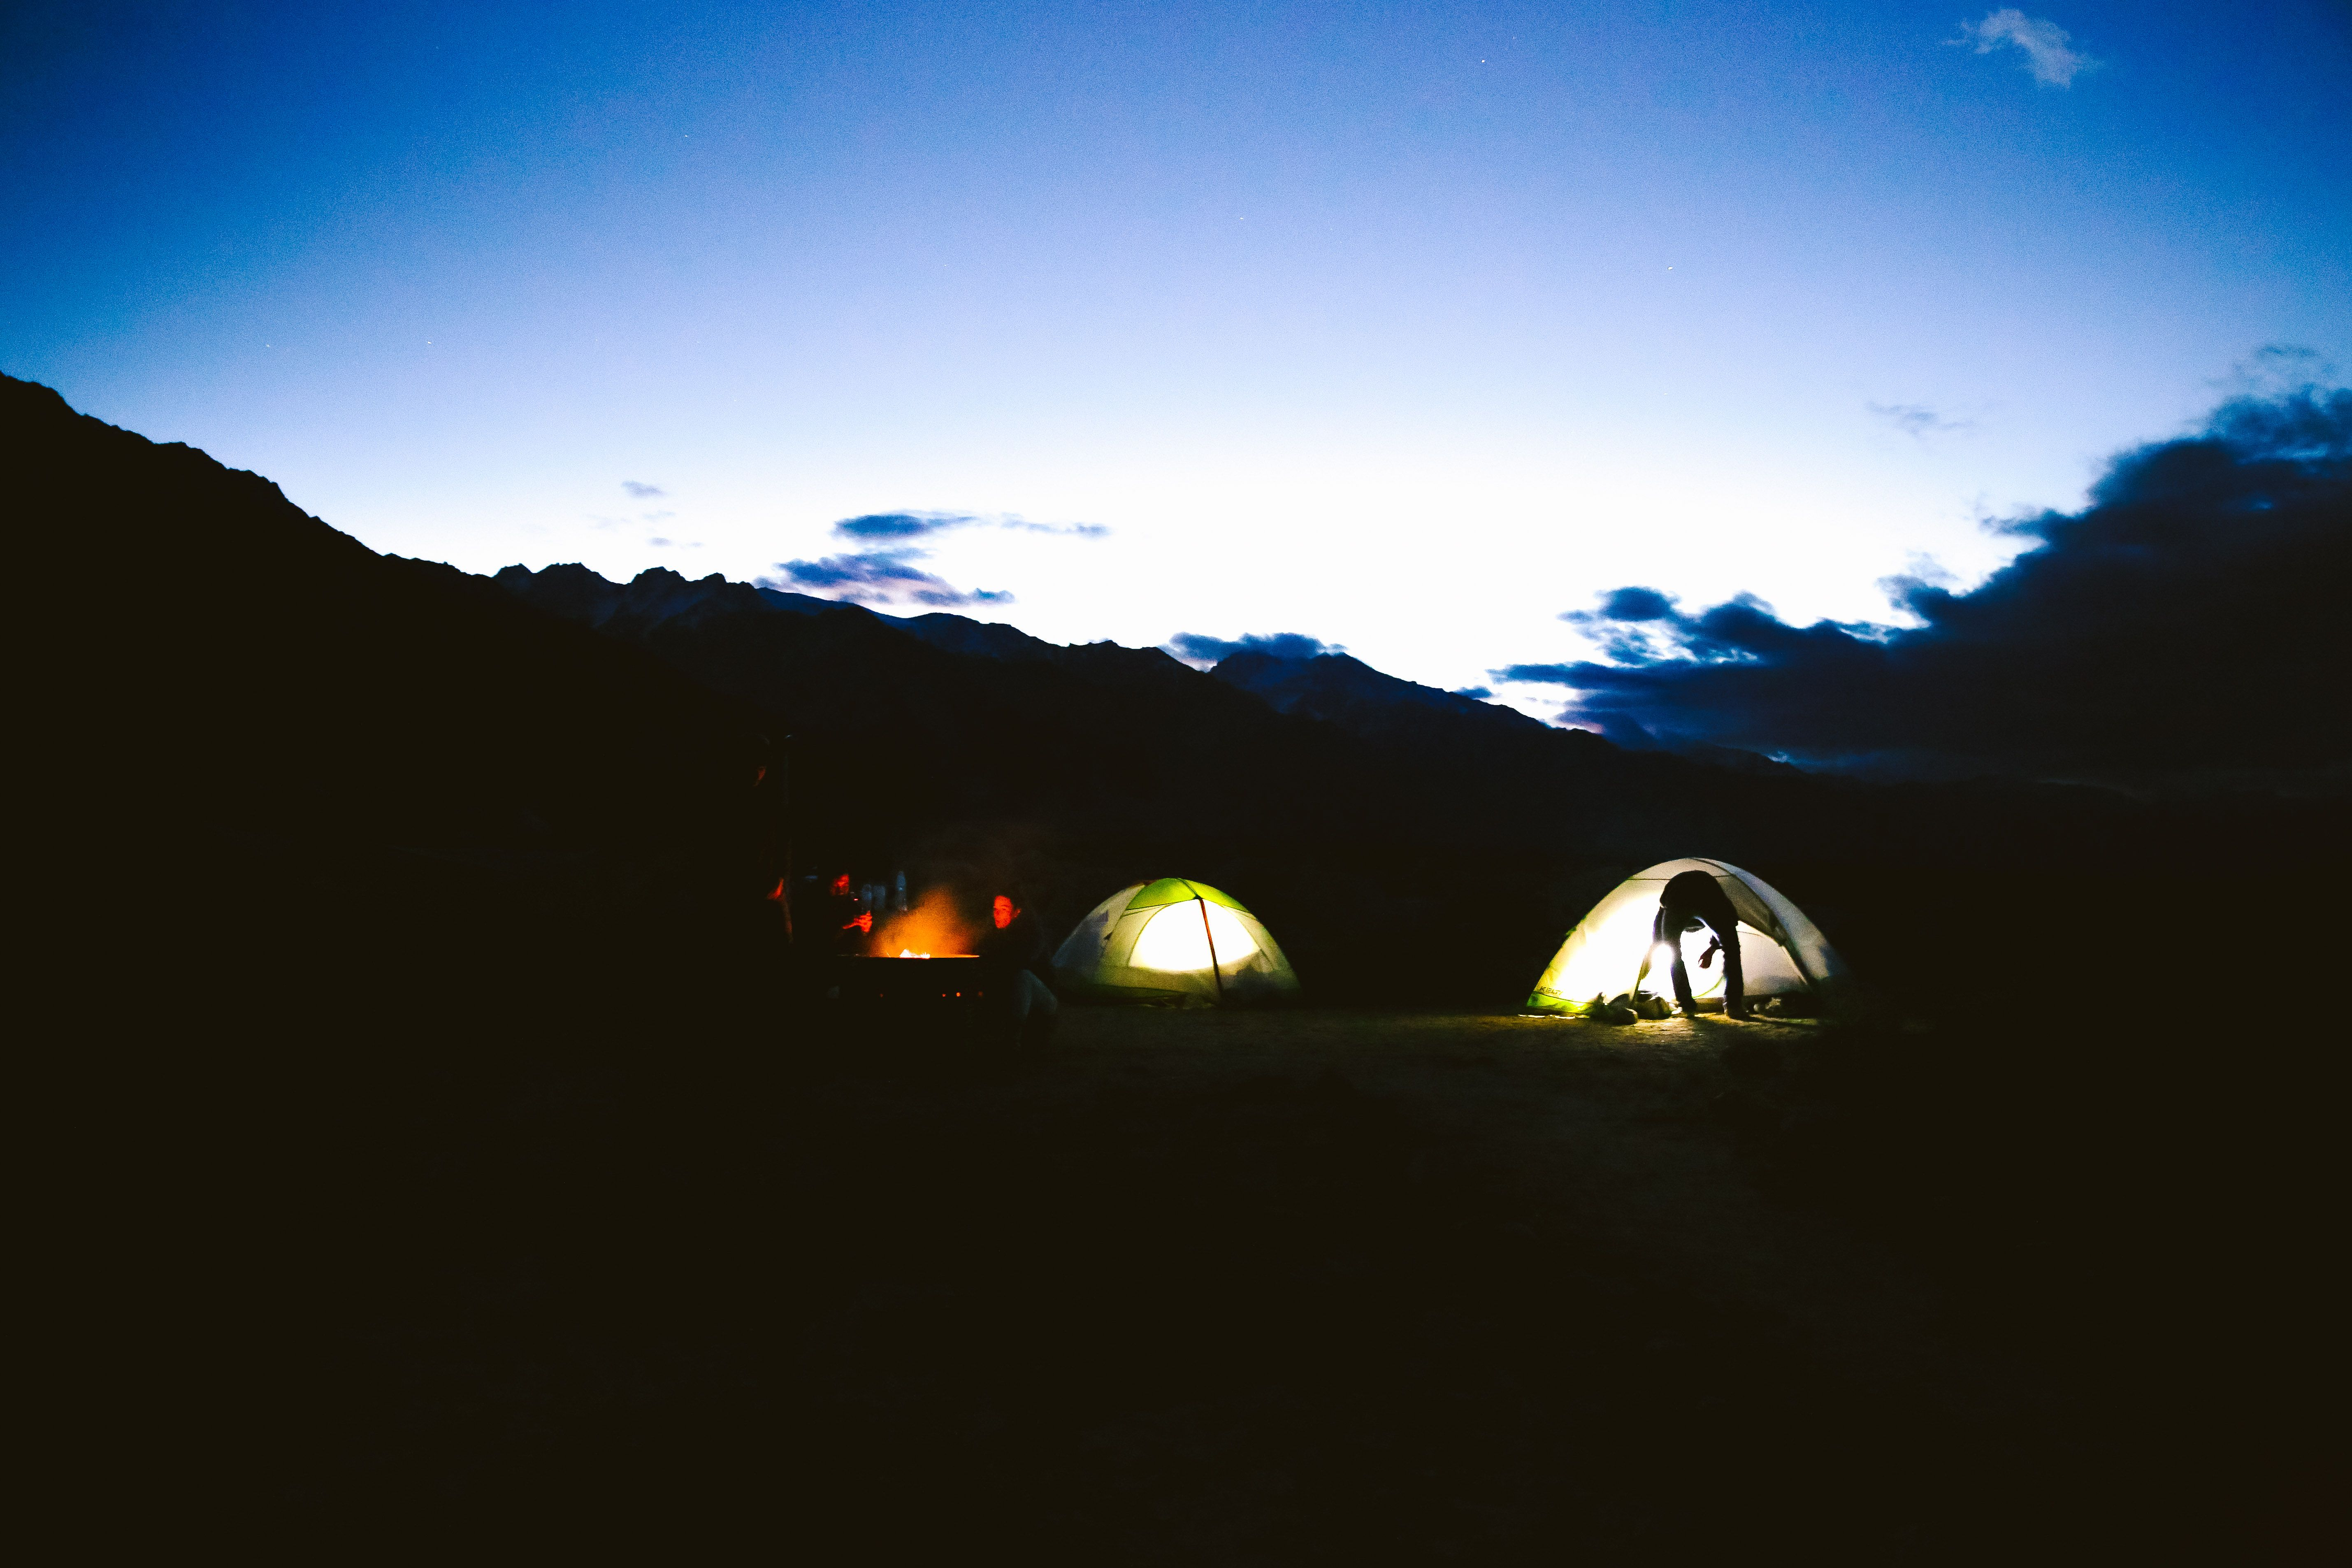 Night camp vibes   Outdoor, Outdoor gear, Camping